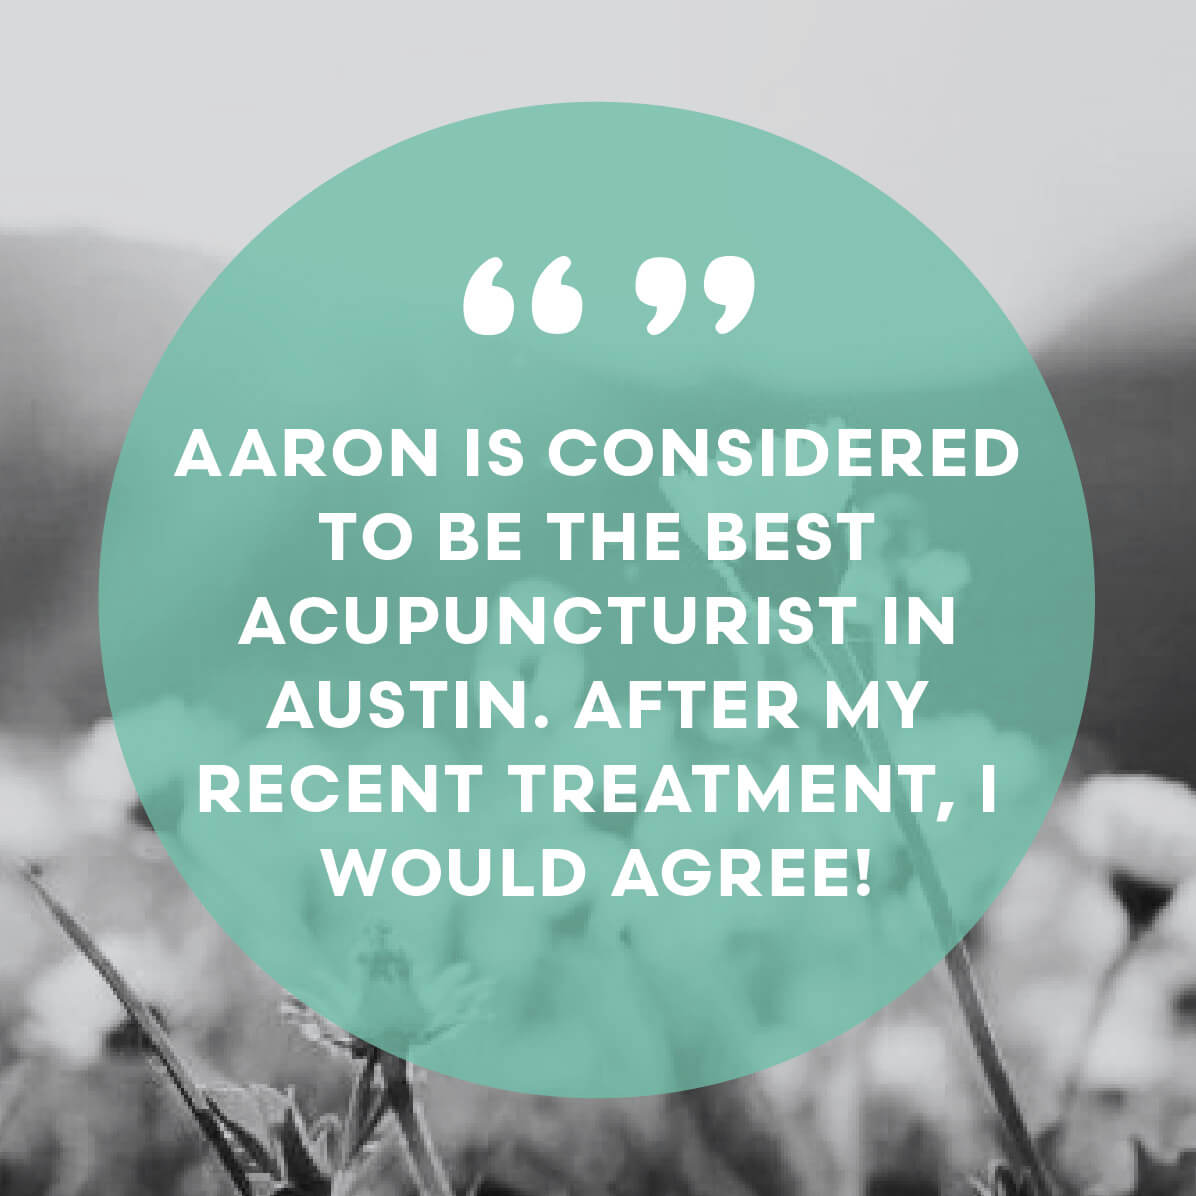 Aaron is considered to the best acupuncturist in Austin. After my recent treatment, I would agree!